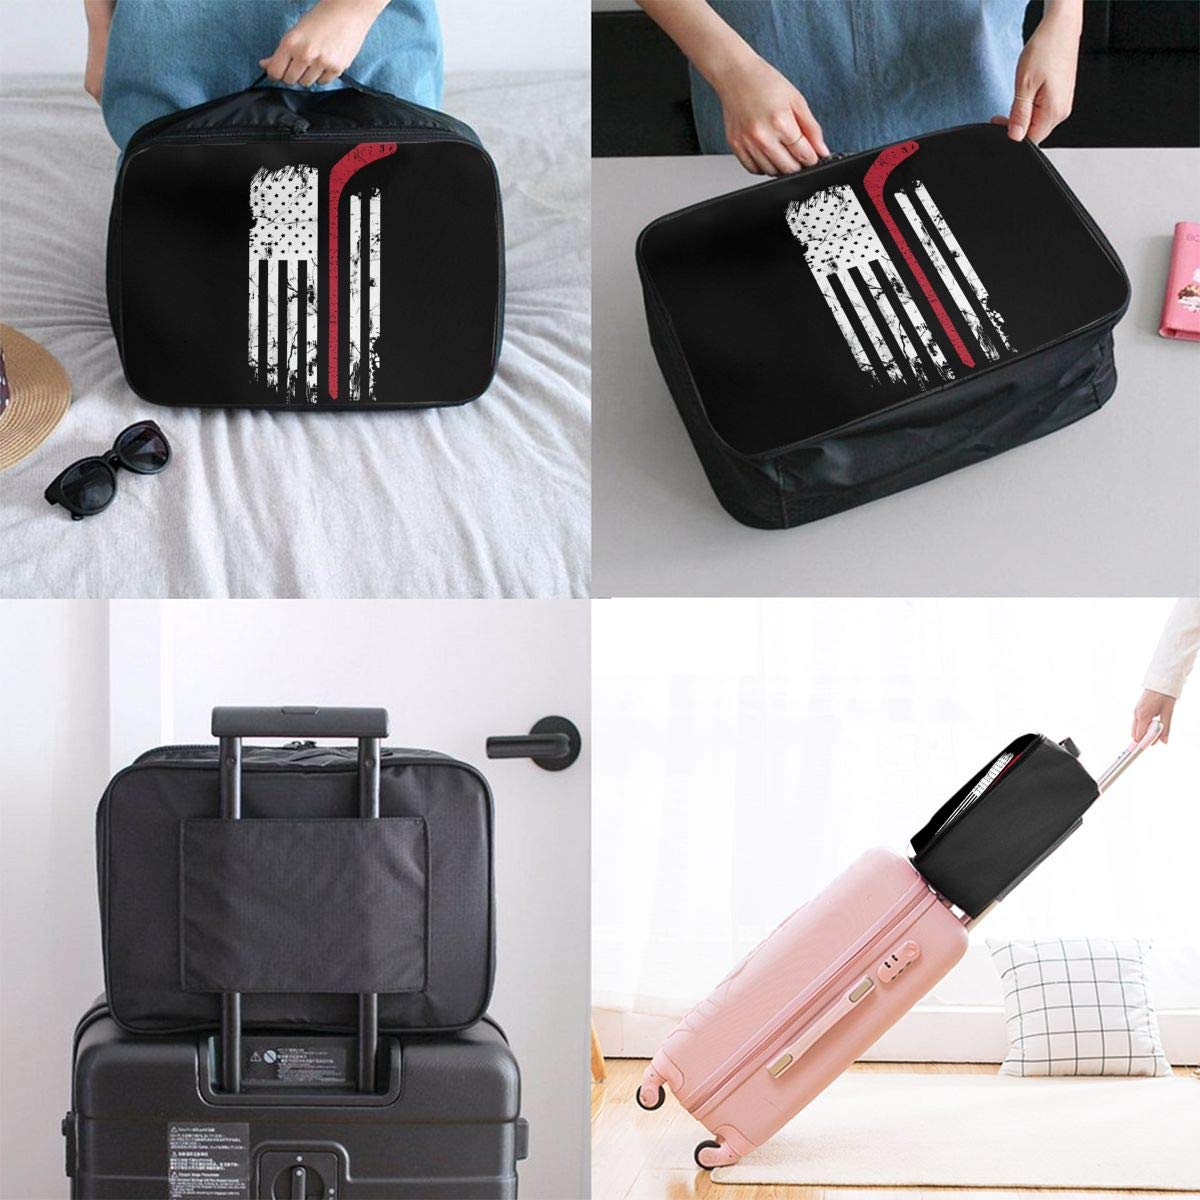 YueLJB Hocky Red Line Flag Lightweight Large Capacity Portable Luggage Bag Travel Duffel Bag Storage Carry Luggage Duffle Tote Bag